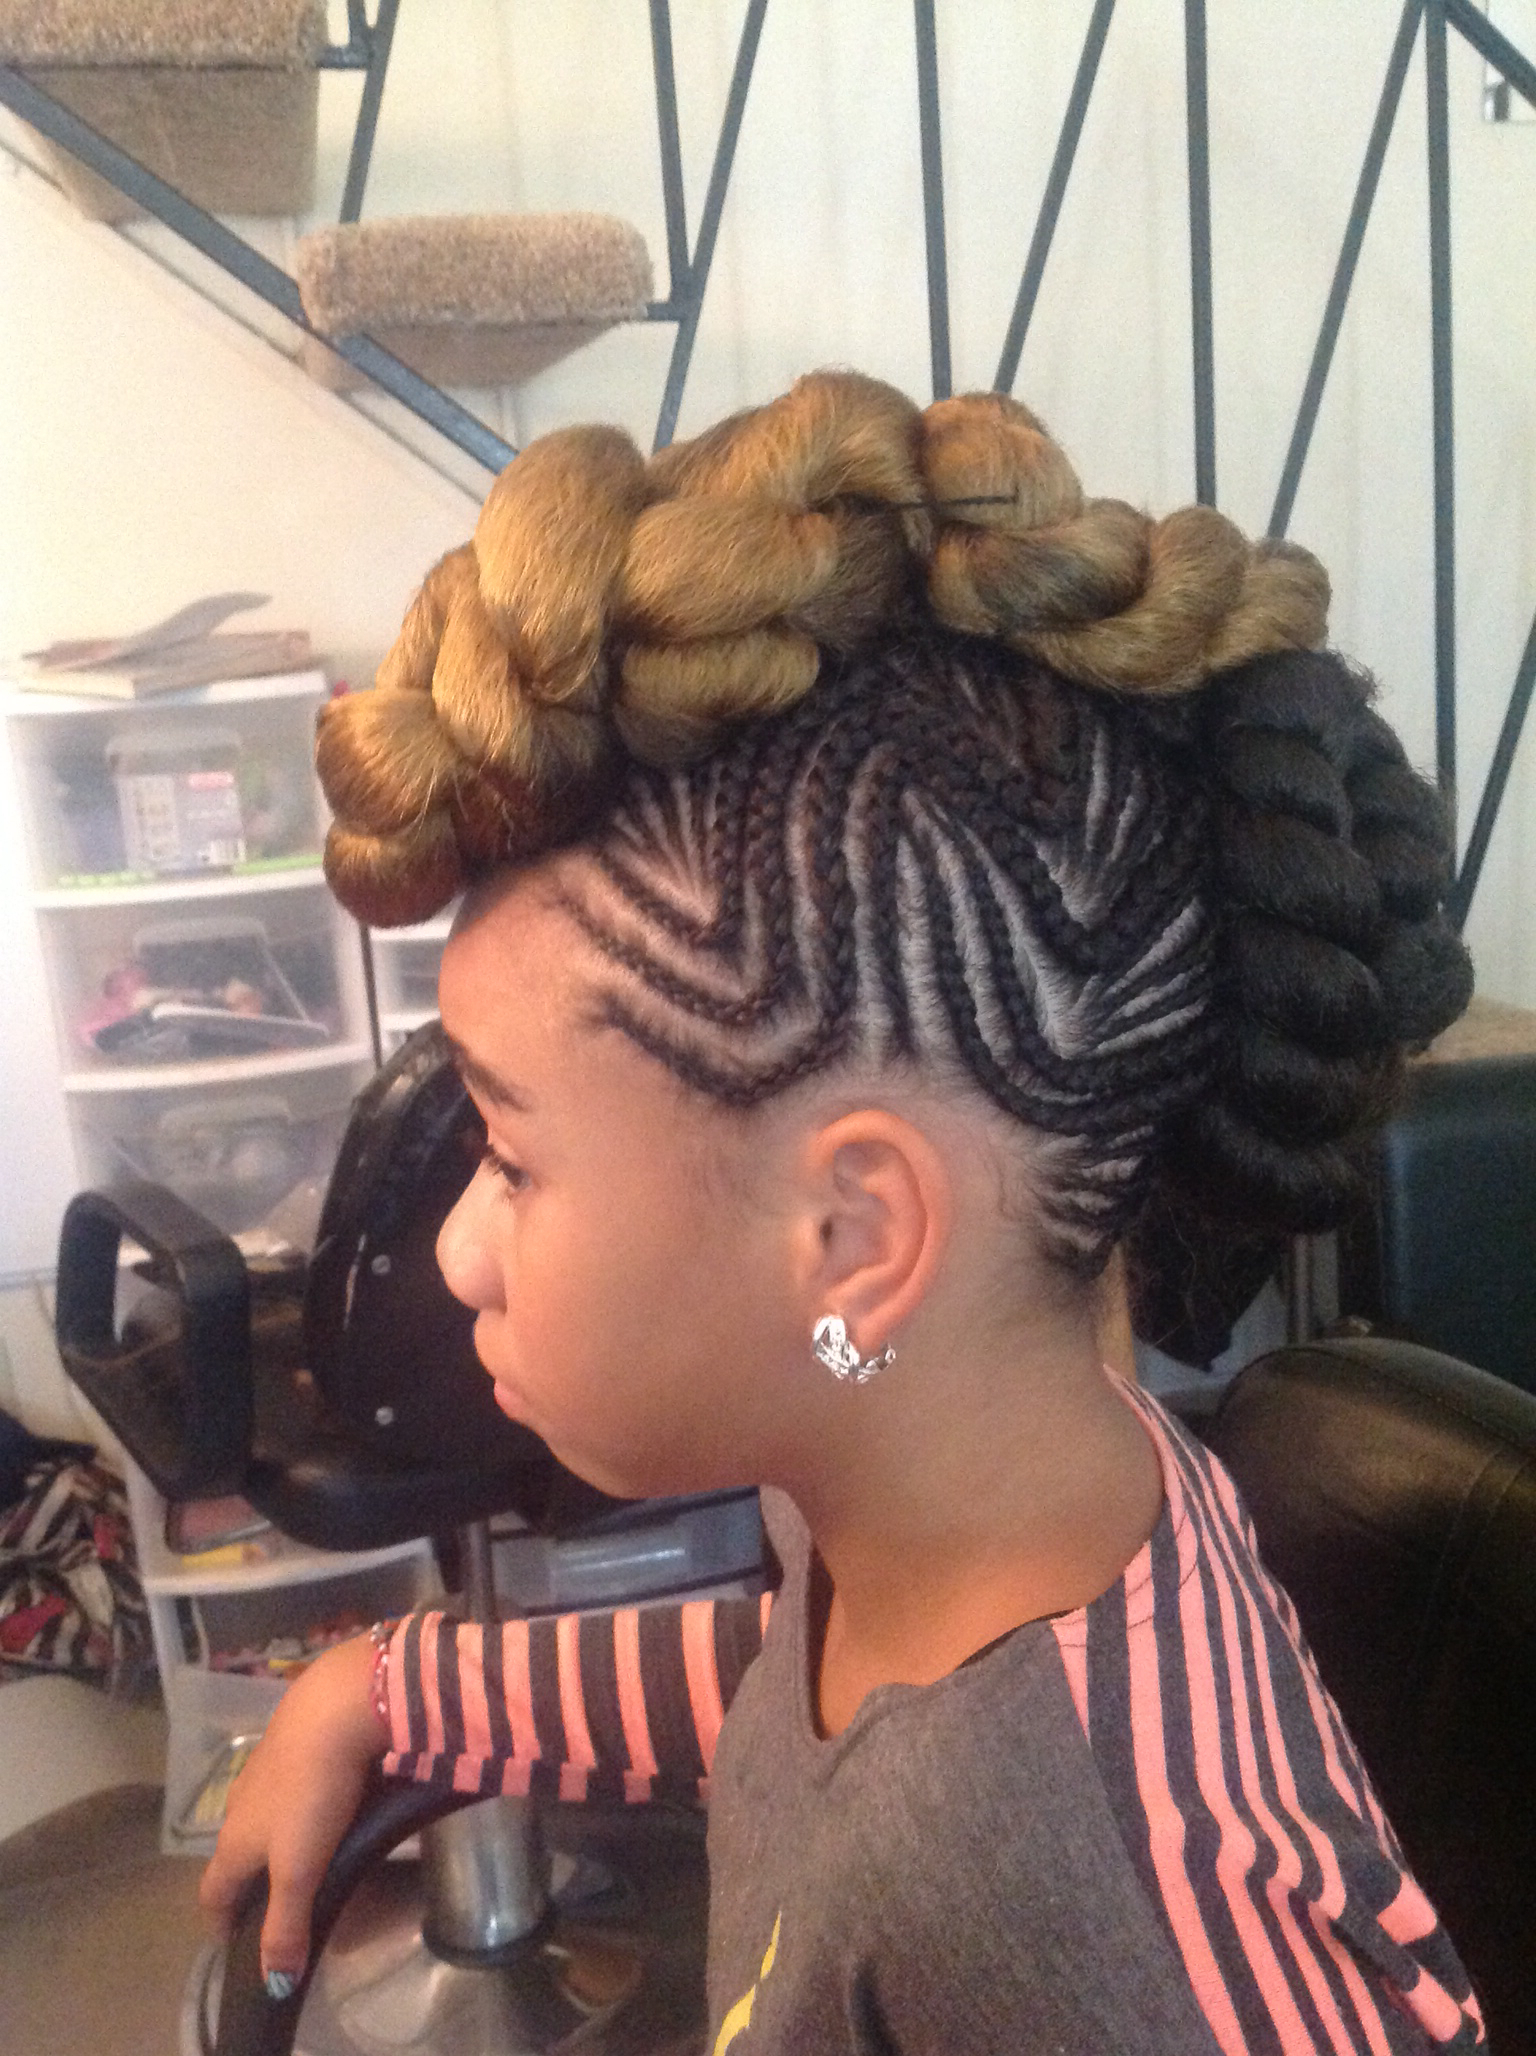 15 Foremost Braided Mohawk Hairstyles – Mohawk With Braids Pertaining To Well Known Black Twisted Mohawk Braid Hairstyles (View 13 of 20)